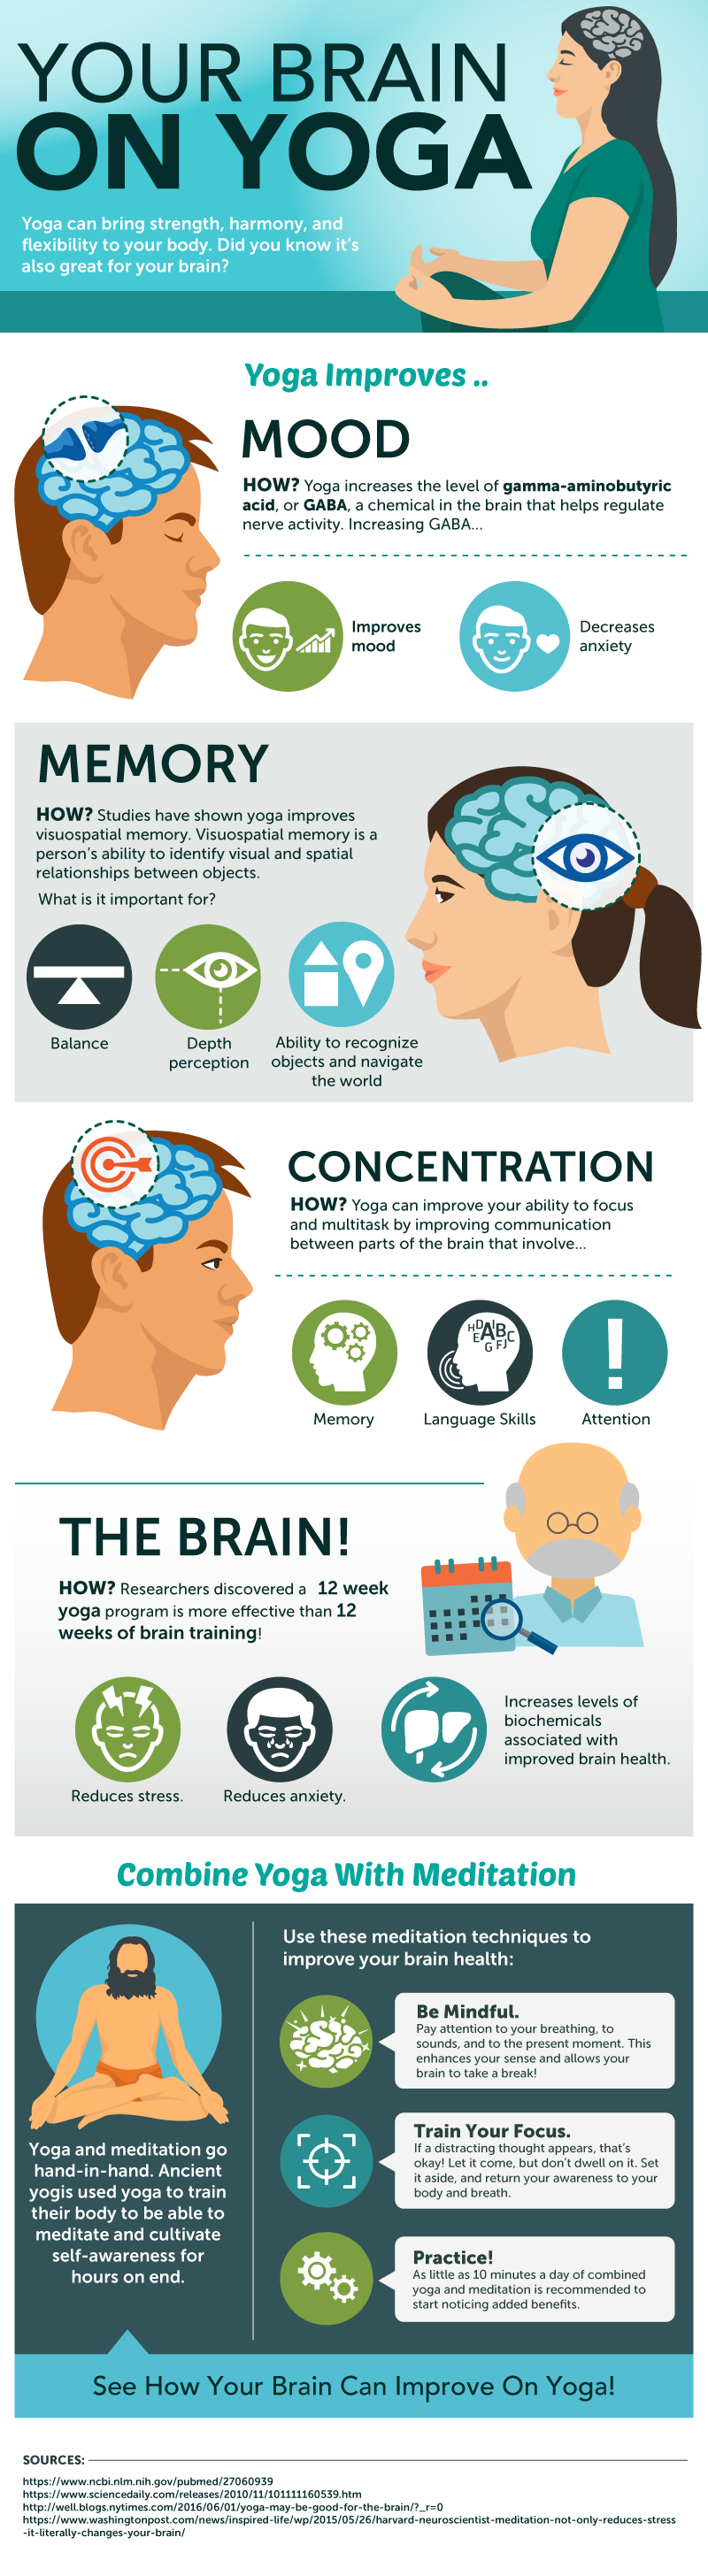 your-brain-yoga-infographic